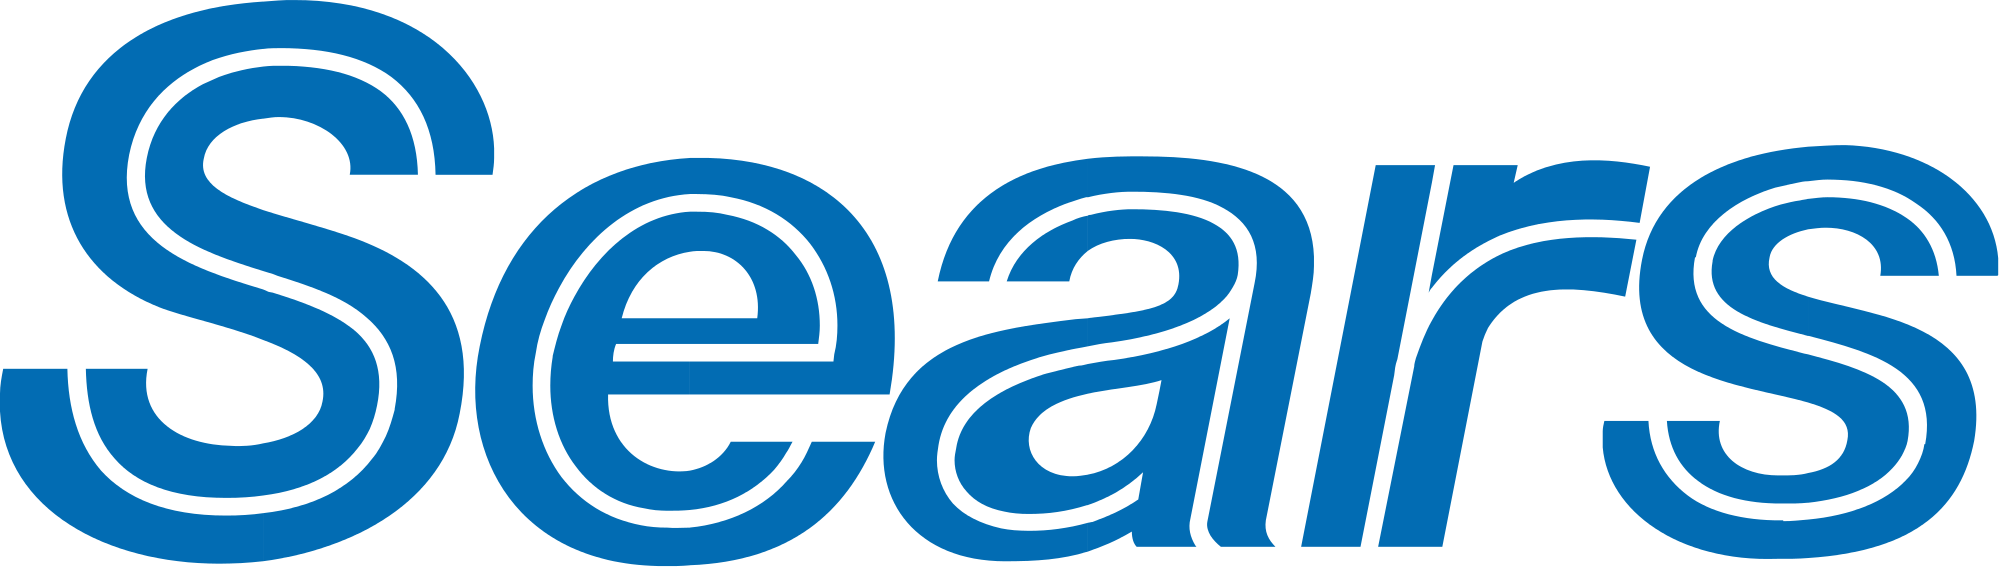 Sears 01.png